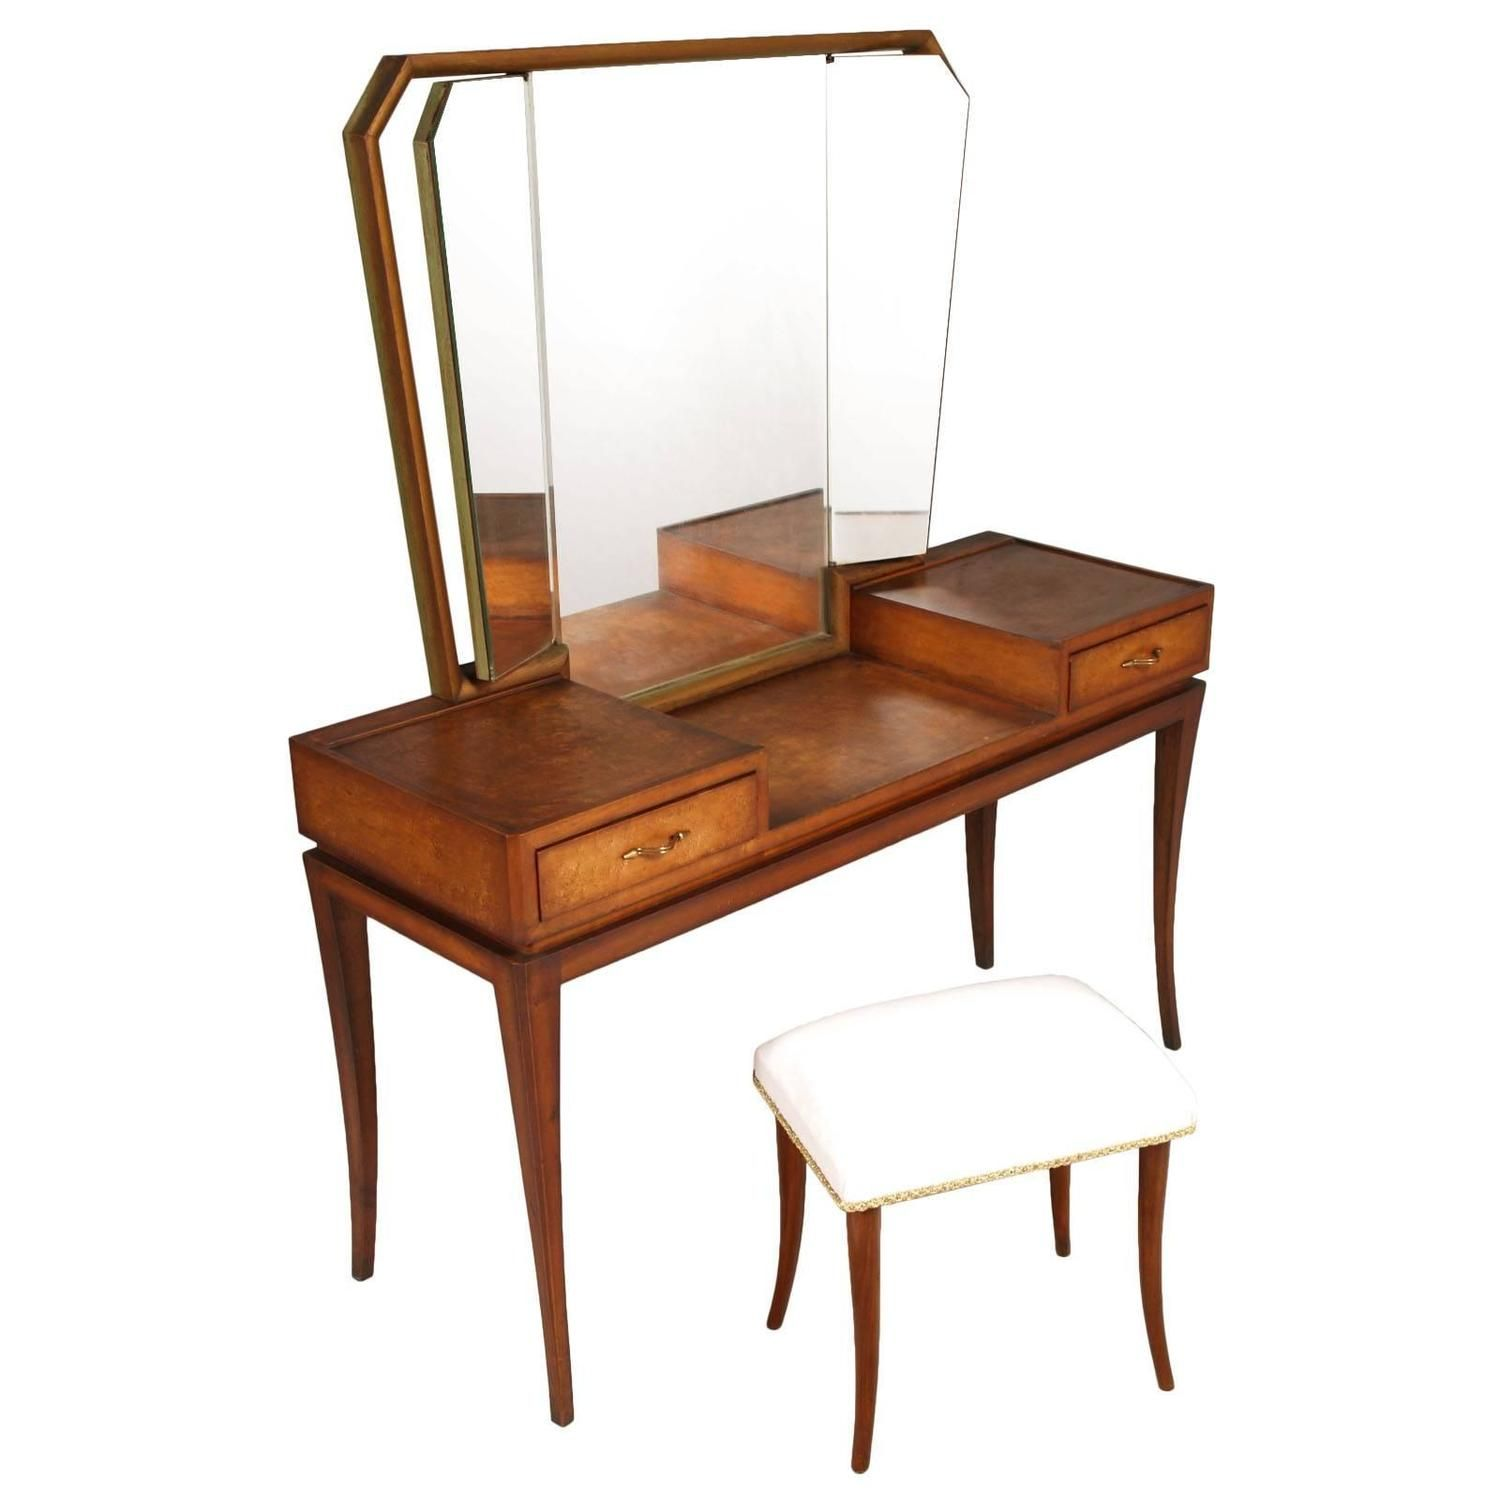 Early 20th century modernist vanity or dressing table meroni early 20th century modernist vanity or dressing table meroni fossati lissone geotapseo Gallery